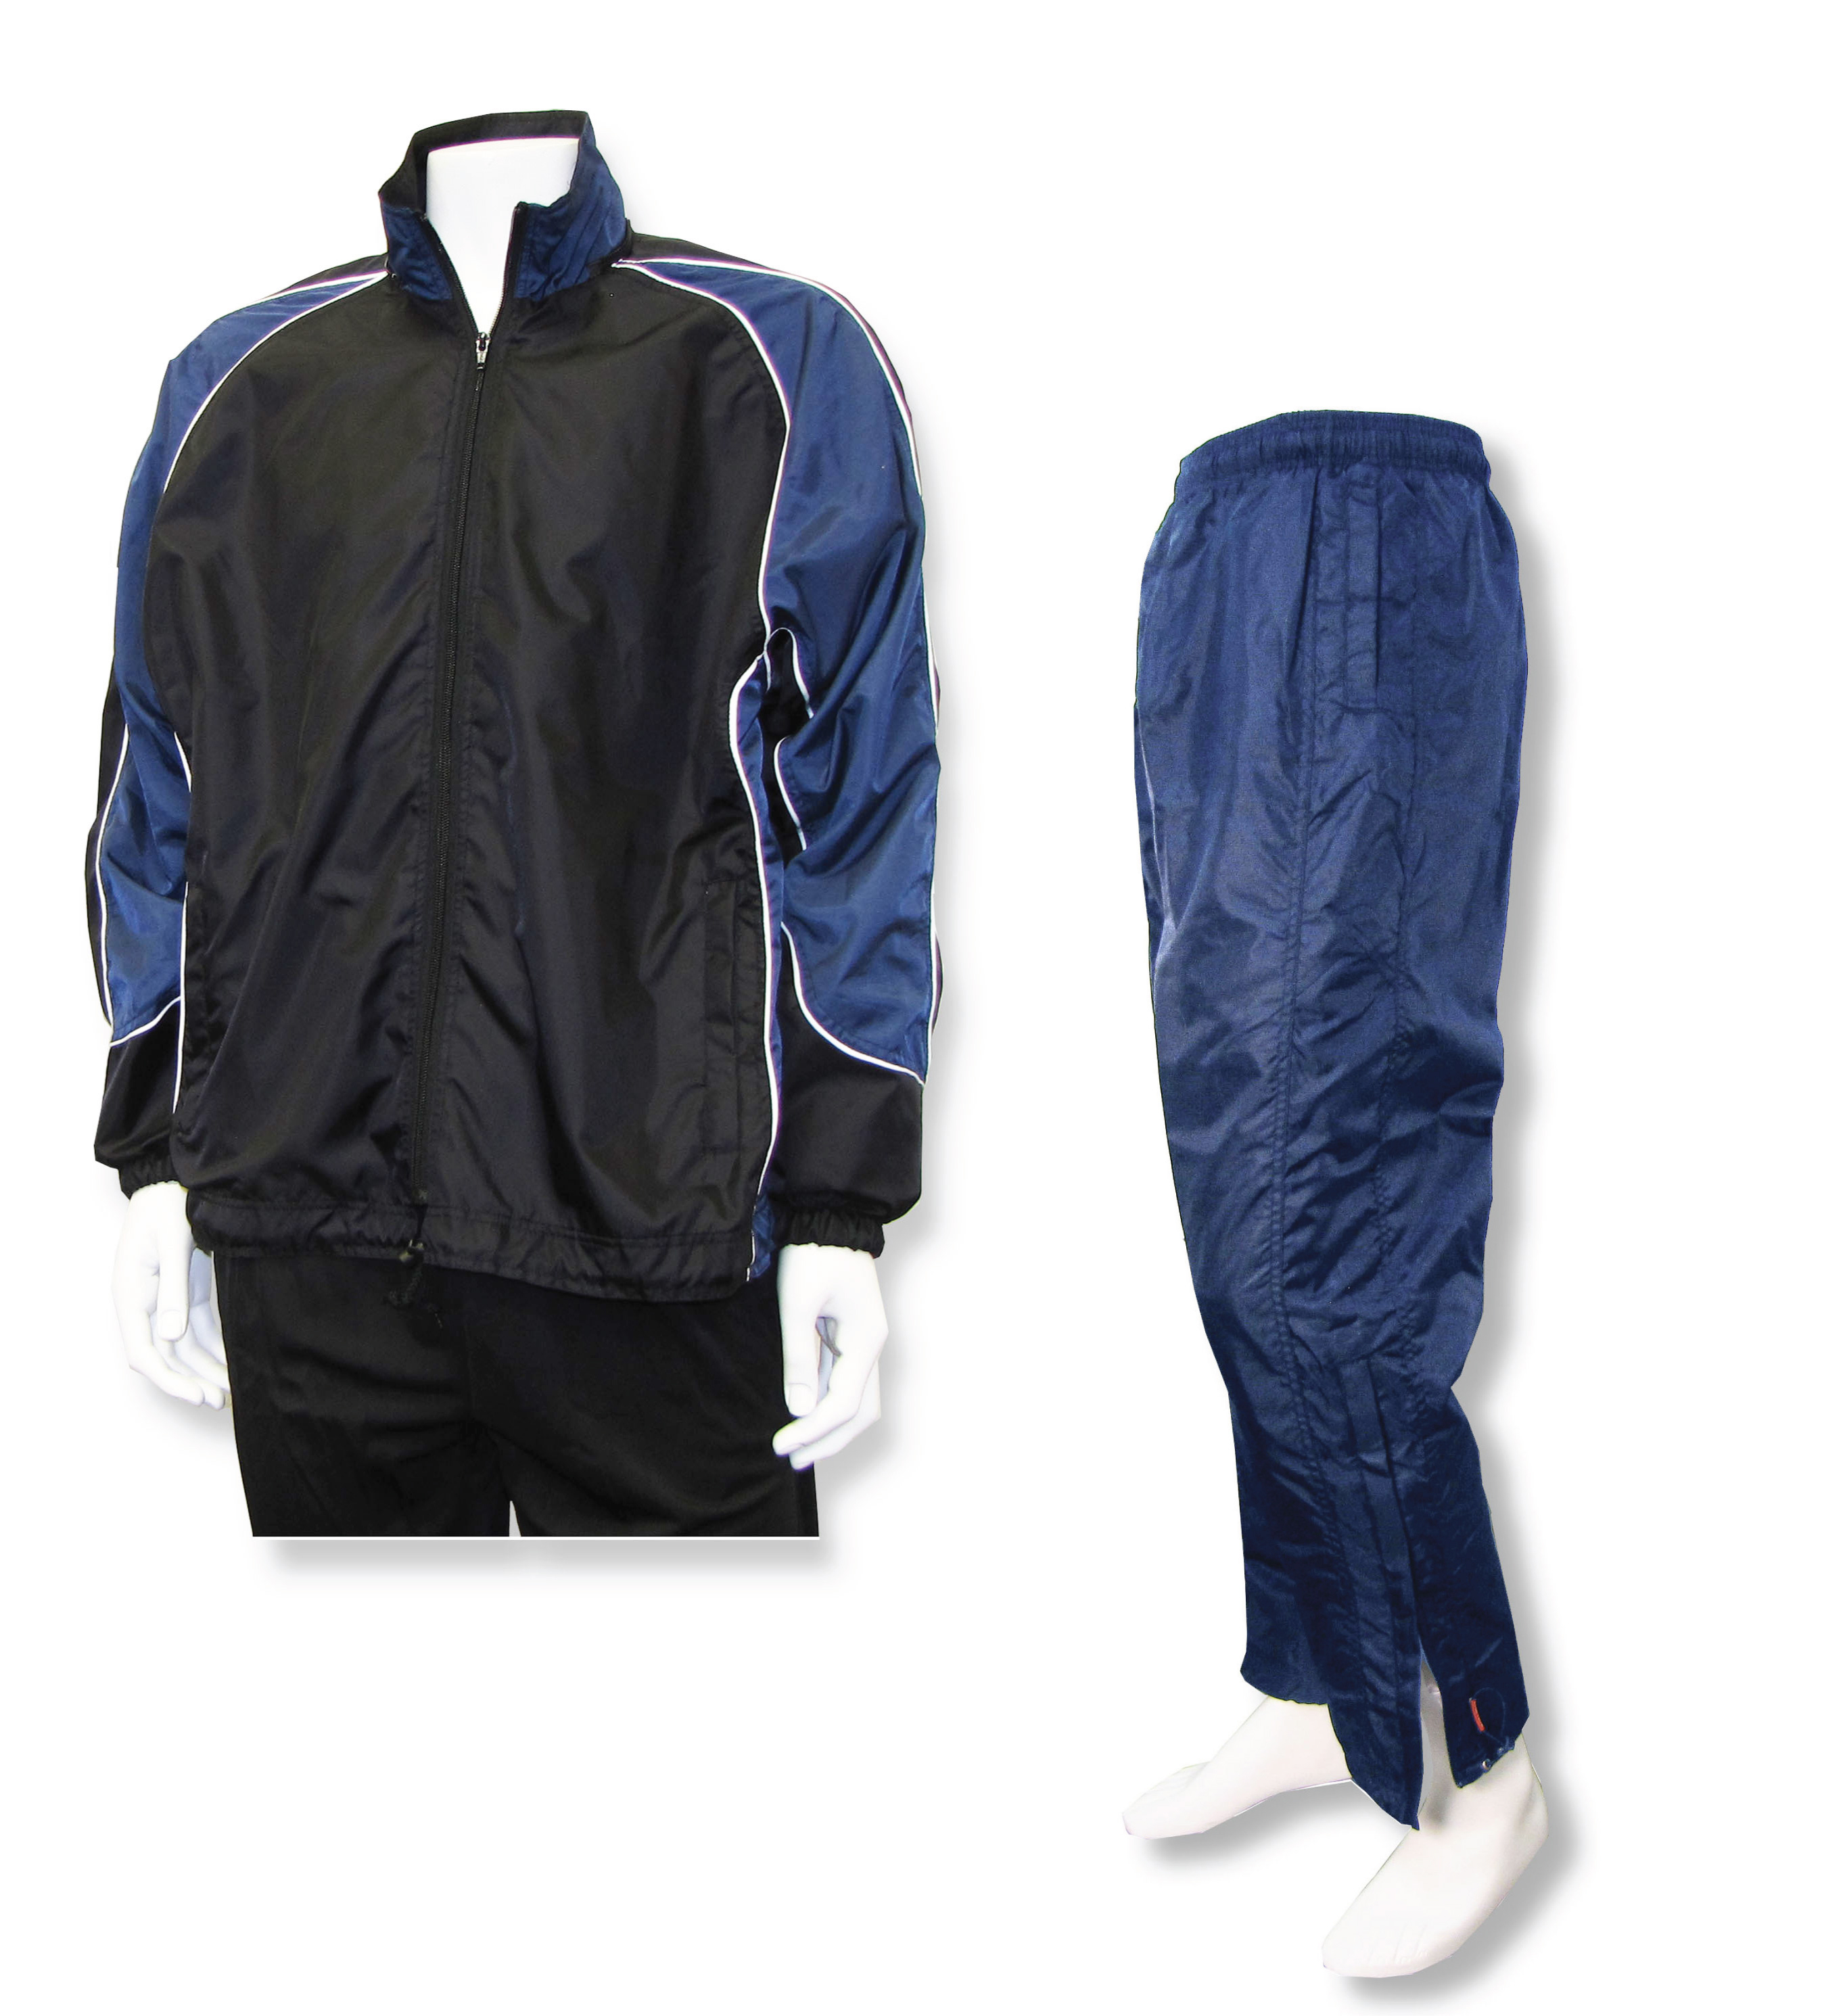 Viper warmup set with black/navy jacket and navy pants by Code Four Athletics